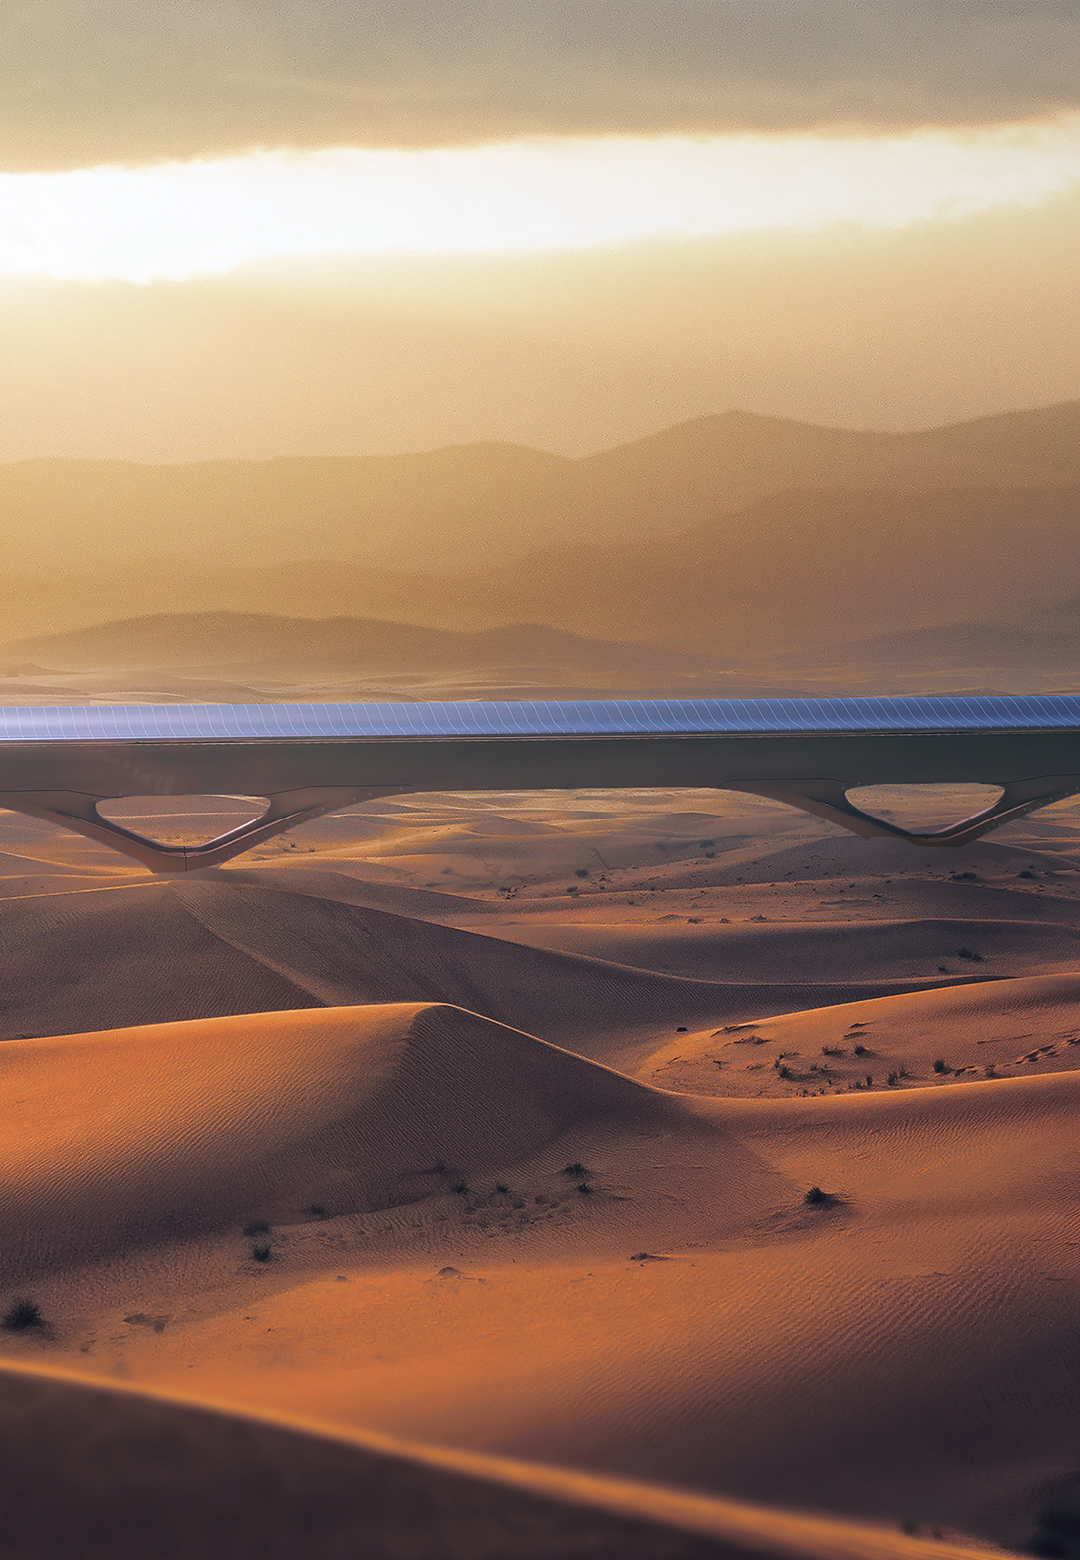 MAD's pylon infrastructure for HyperloopTT | HyperloopTT | MAD | STIR